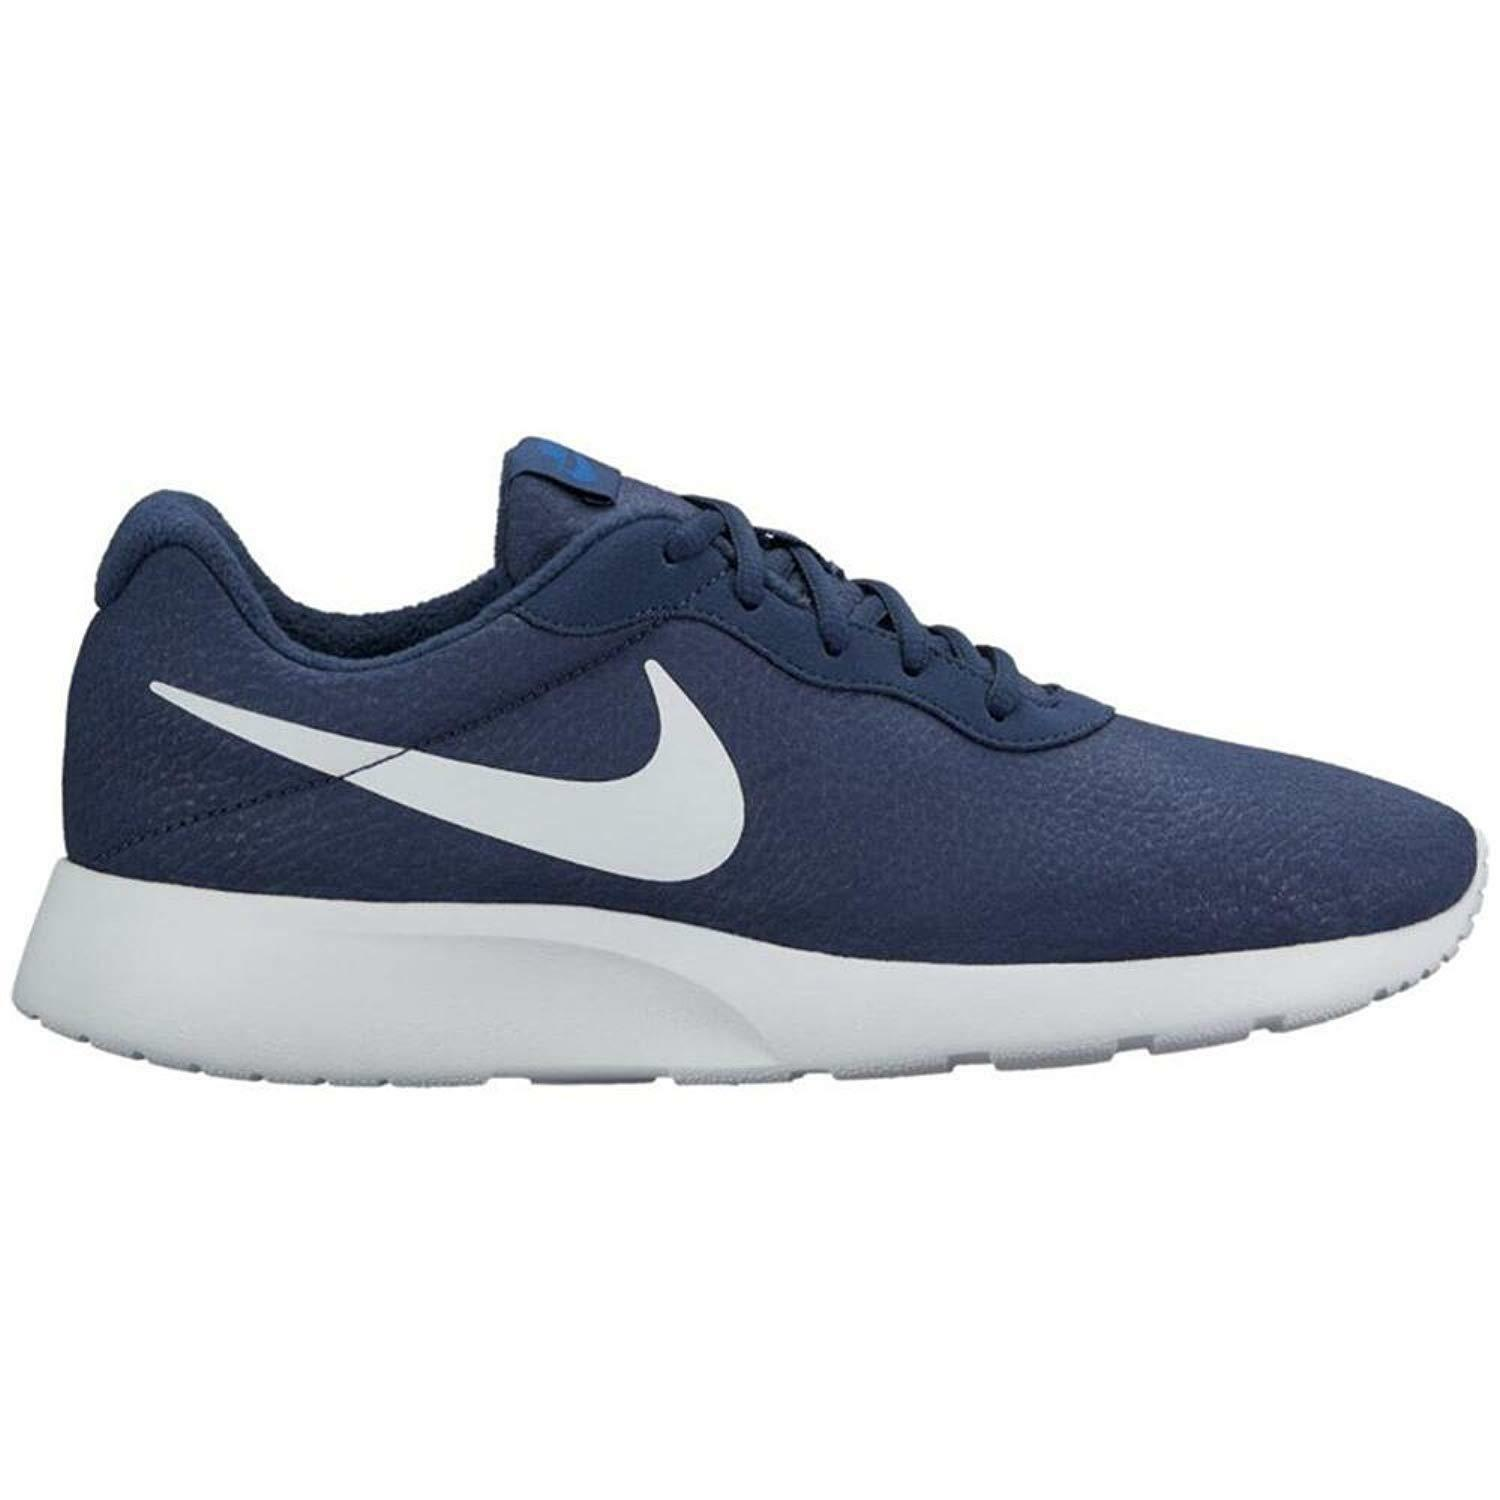 Nike Tanjun Premium Obsidian Navy/White Men's Running Shoes 876899-402